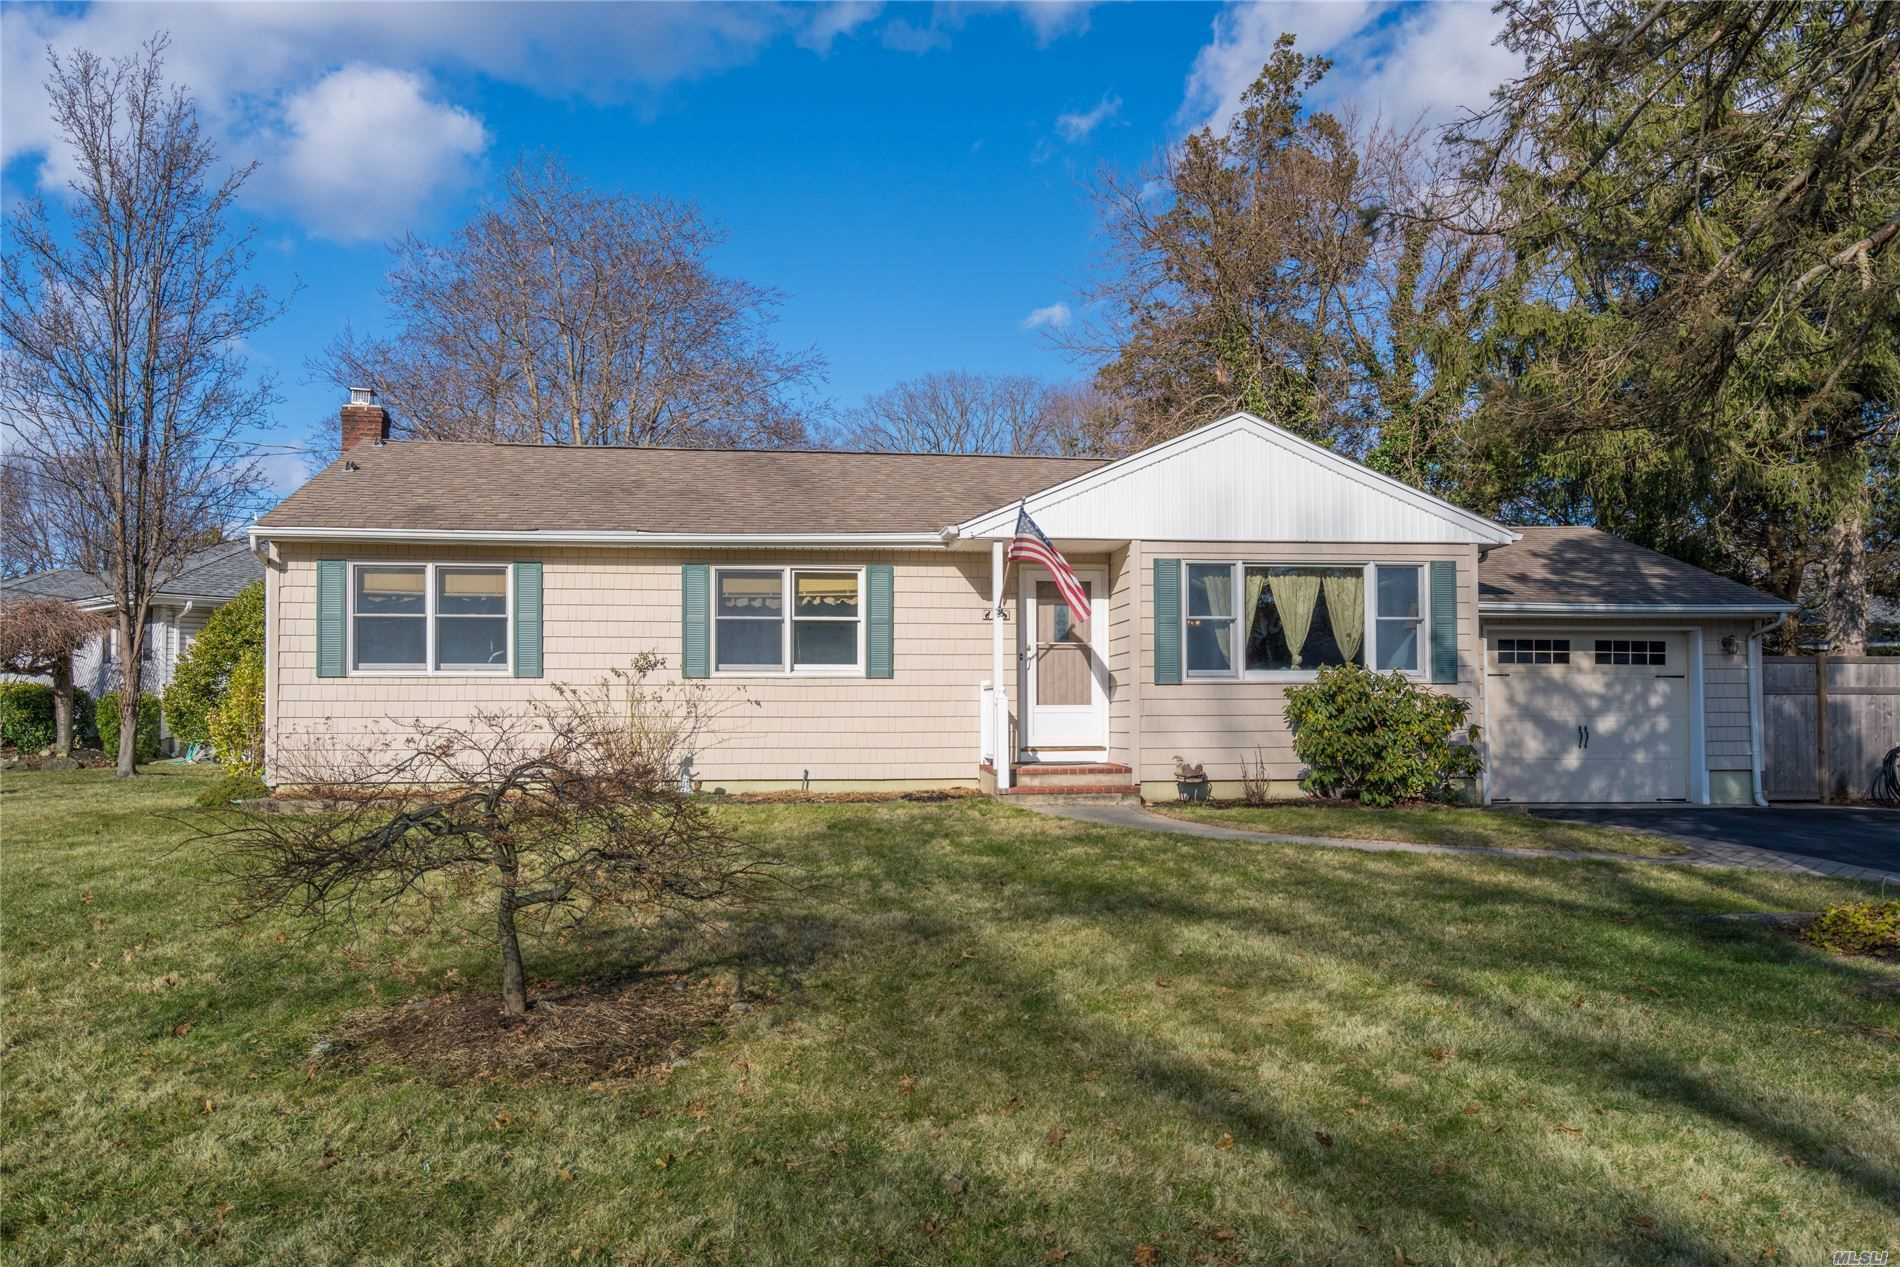 4 Wexford Street, Huntington, NY 11743 - MLS#: 3206381